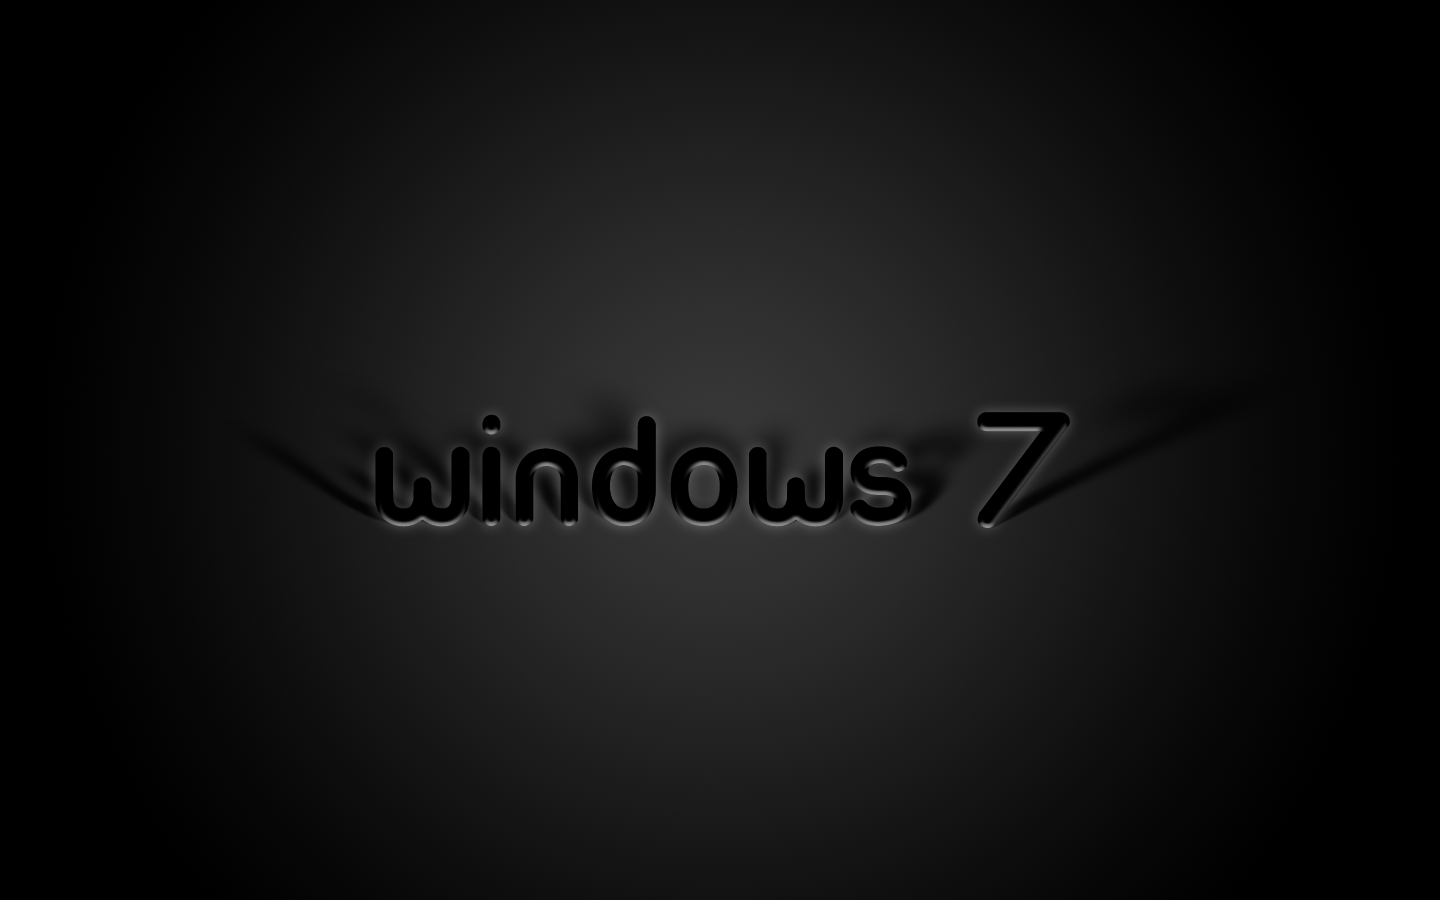 Black Windows 7 Wallpapers 1440x900